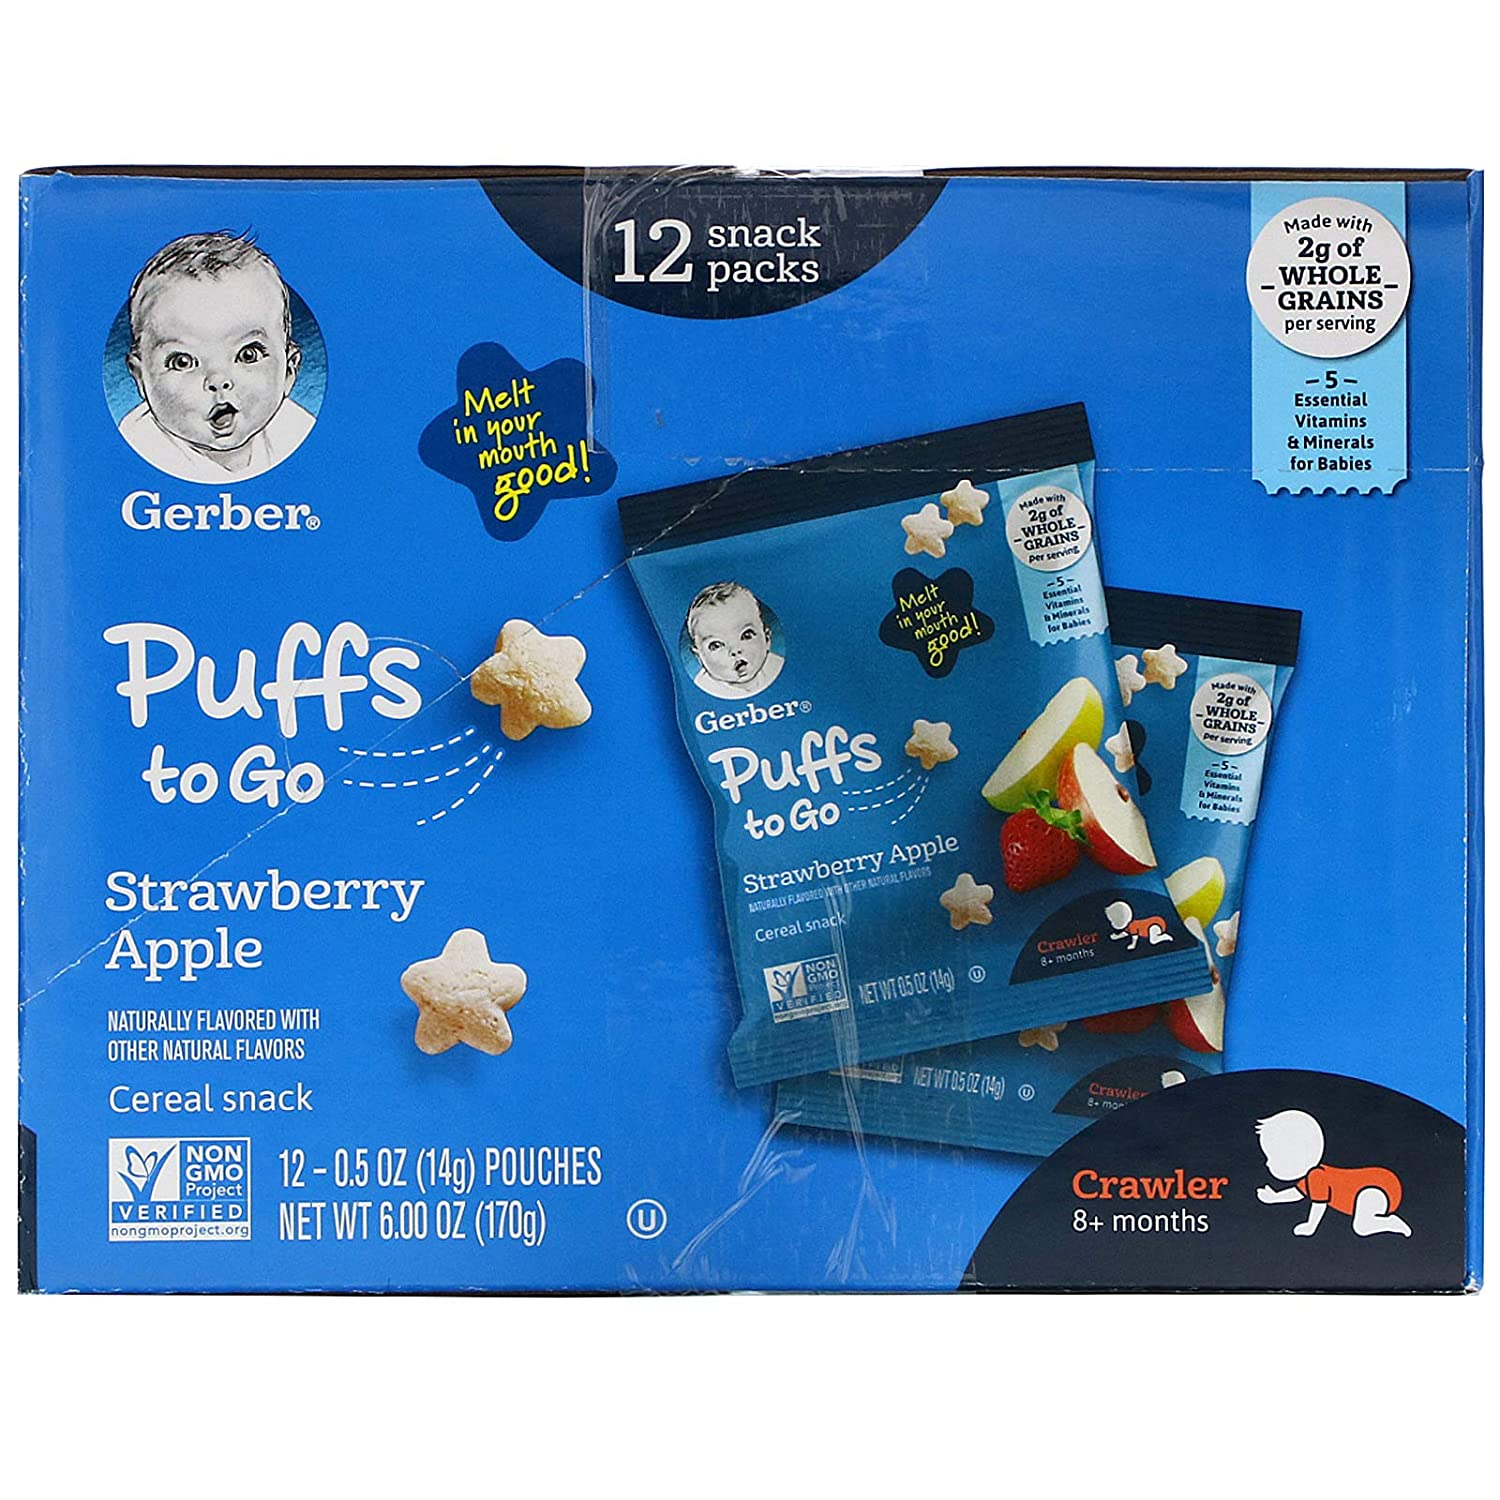 Gerber Puffs to Go, 8+ Months, Strawberry Apple, 12 Snack Packs, 0.5 oz (14 g) Each